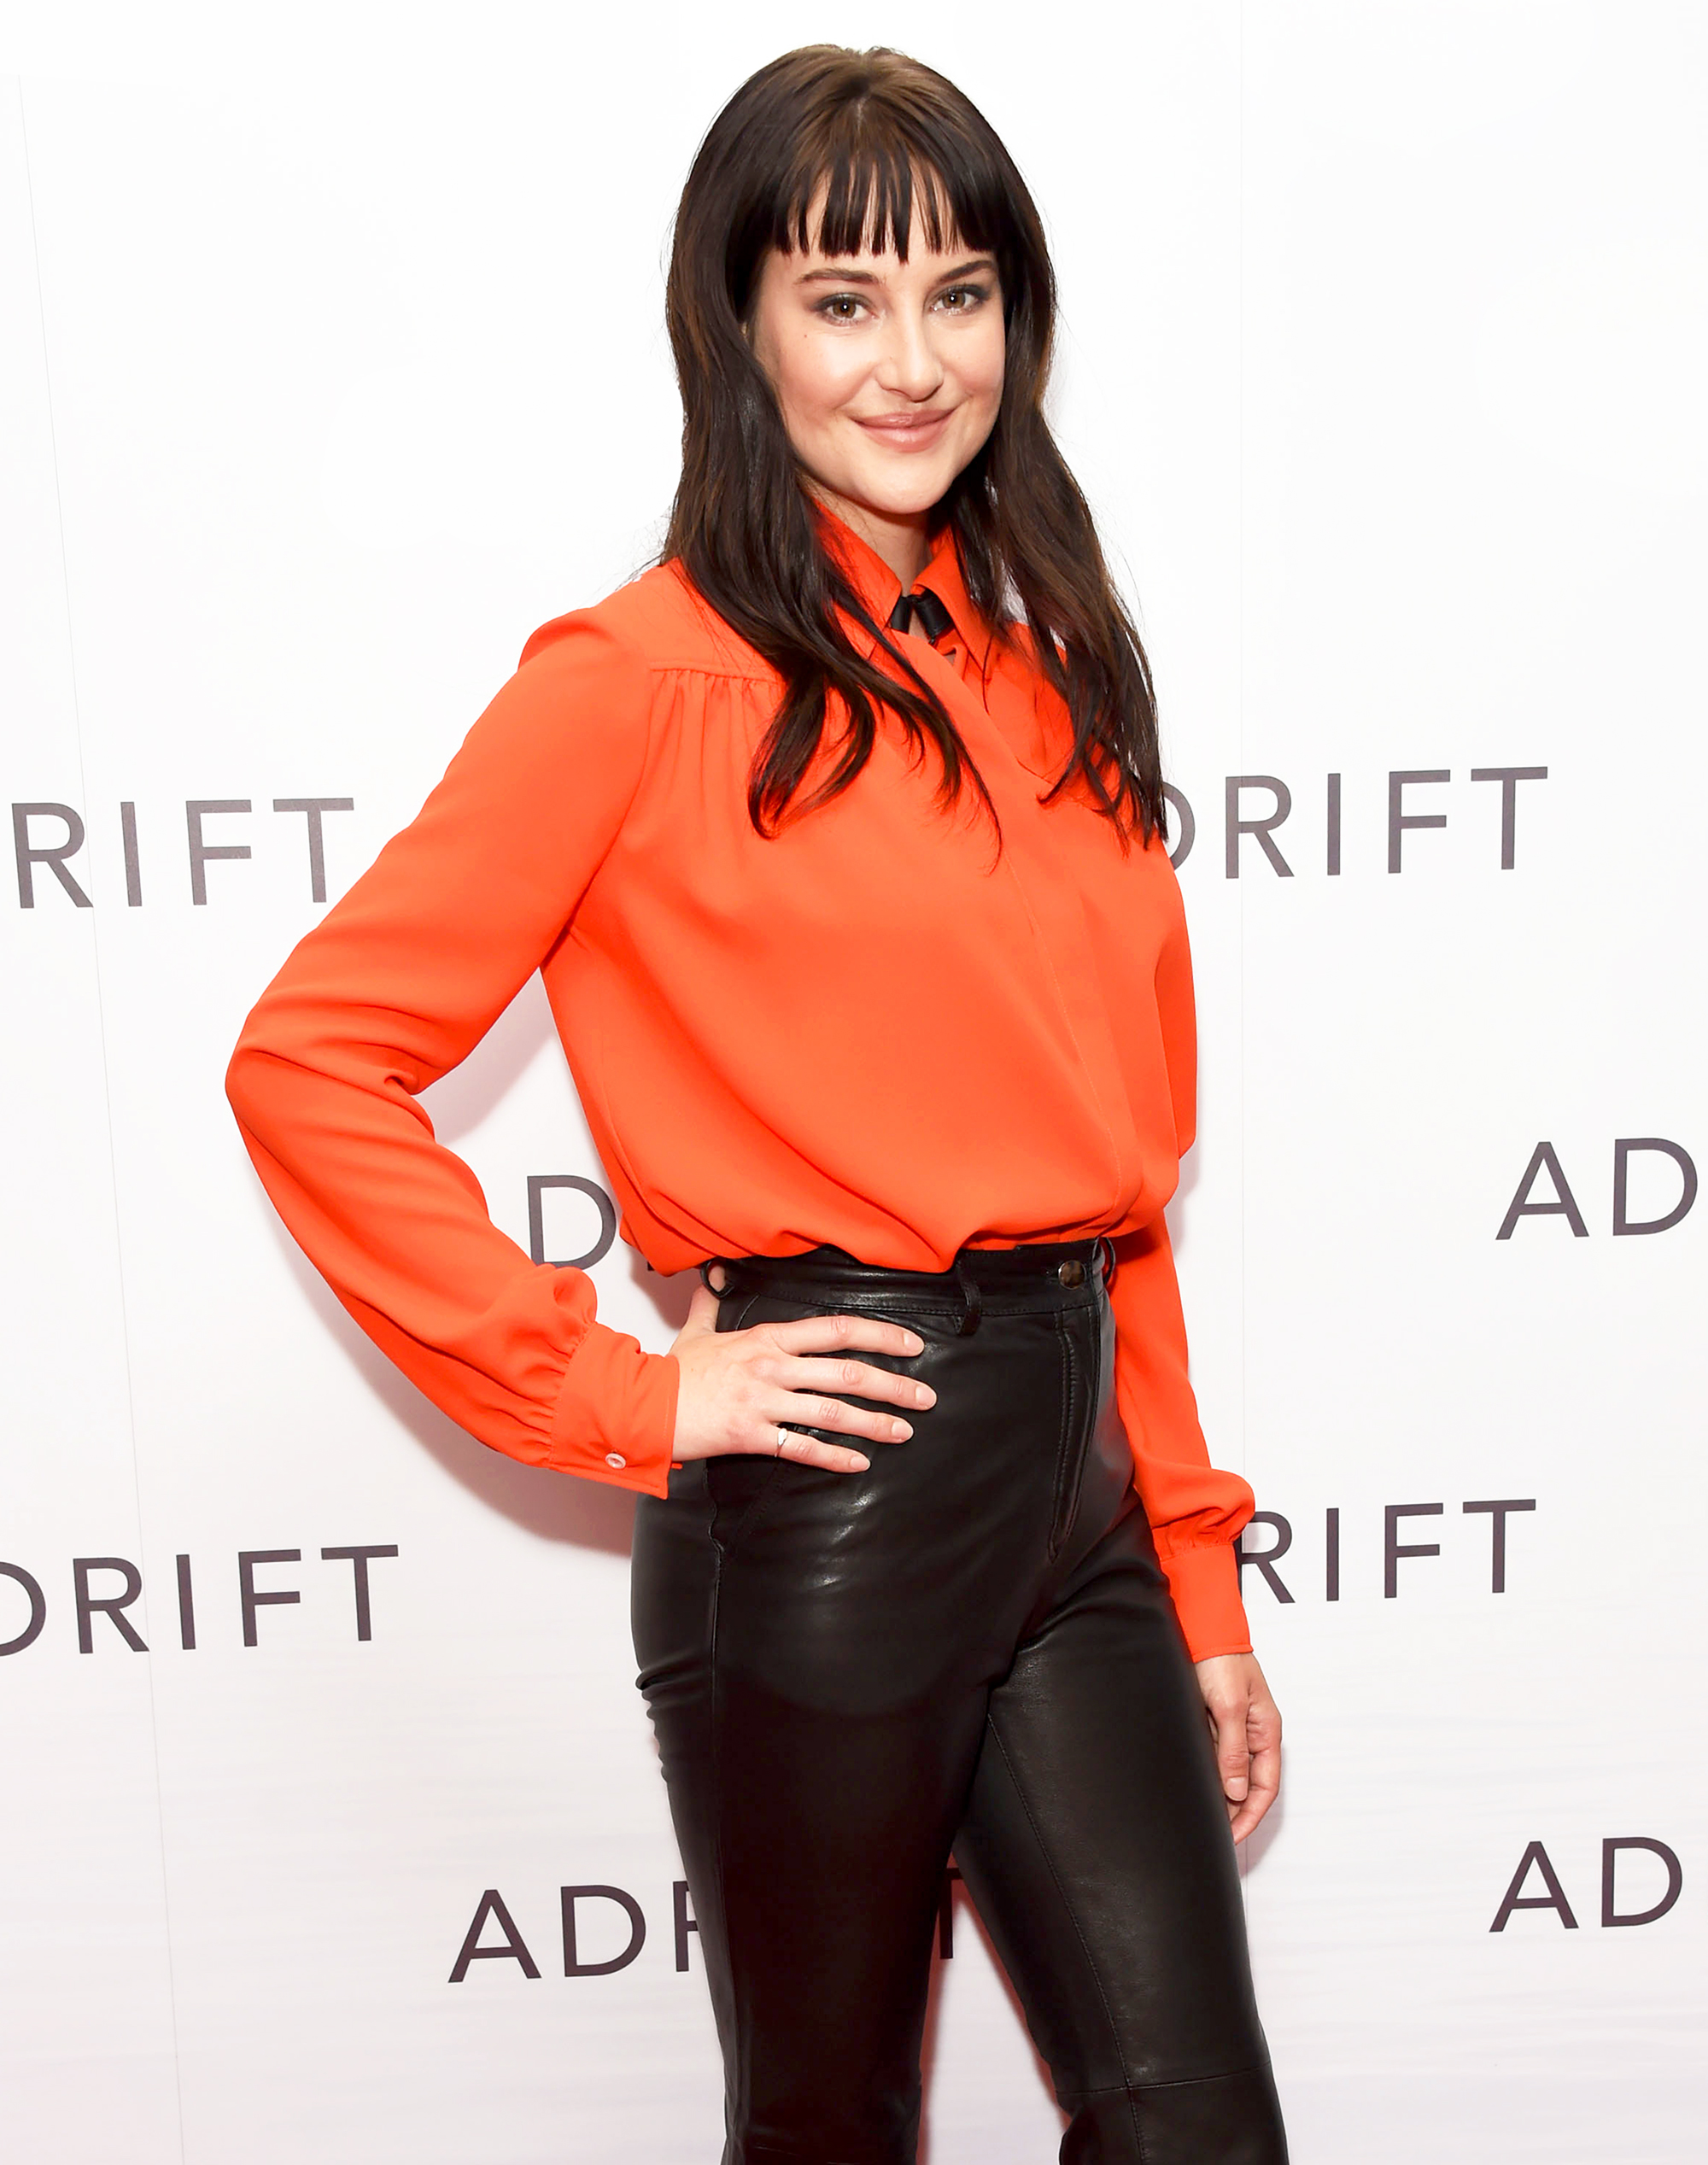 """Shailene Woodley attends a special screening of """"Adrift"""" at The Soho Hotel on June 24, 2018 in London, England. - Shailene Woodley attends a special screening of """"Adrift"""" at The Soho Hotel on June 24, 2018 in London, England."""